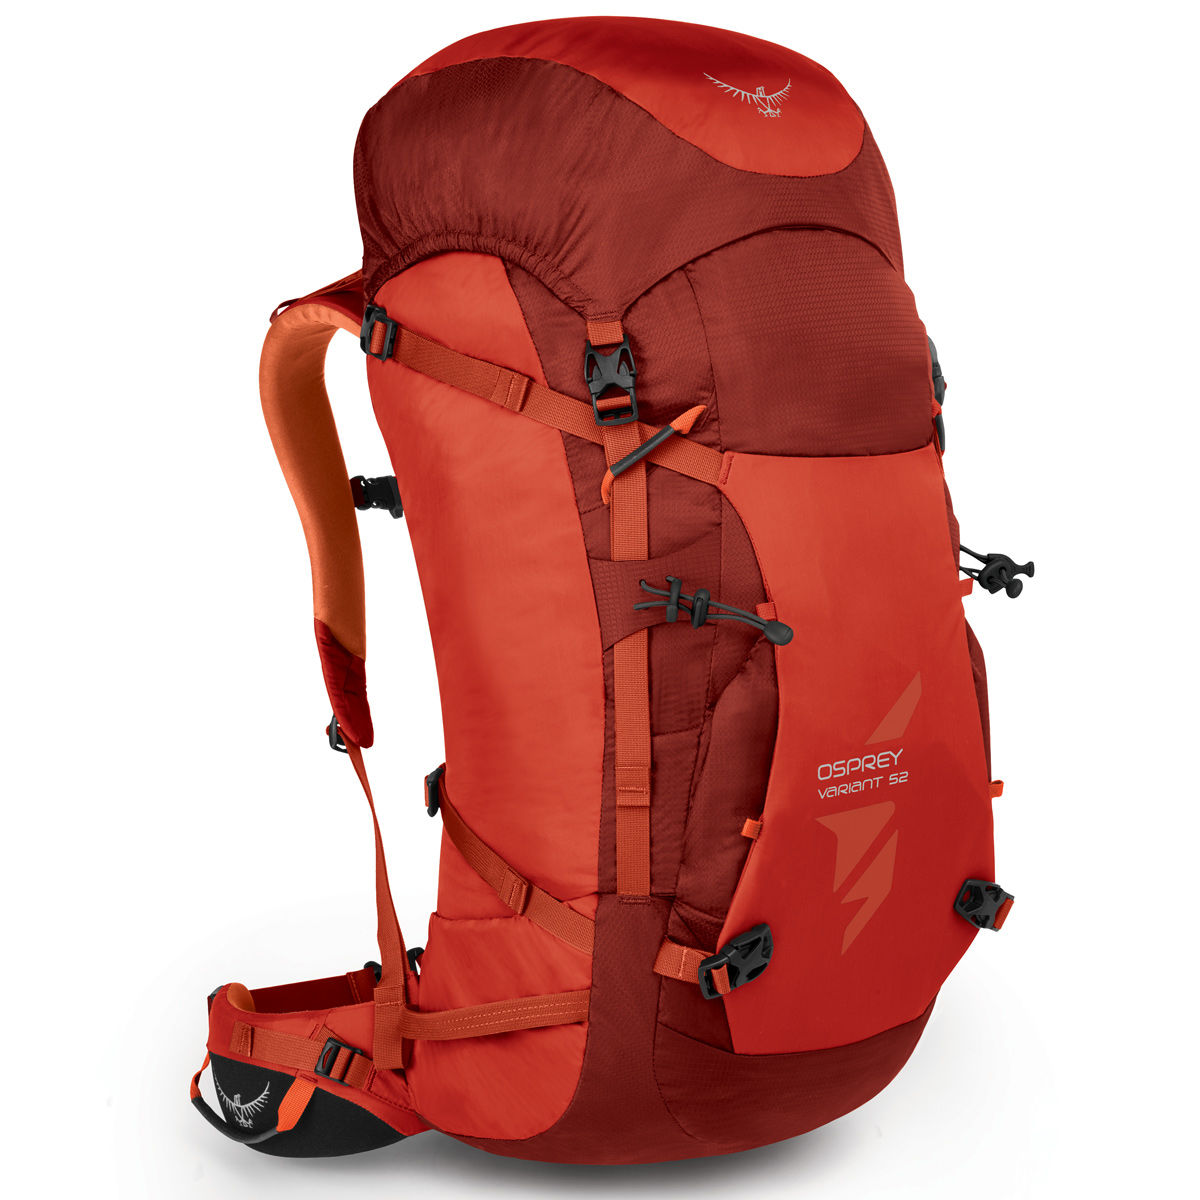 photo: Osprey Variant 52 weekend pack (50-69l)